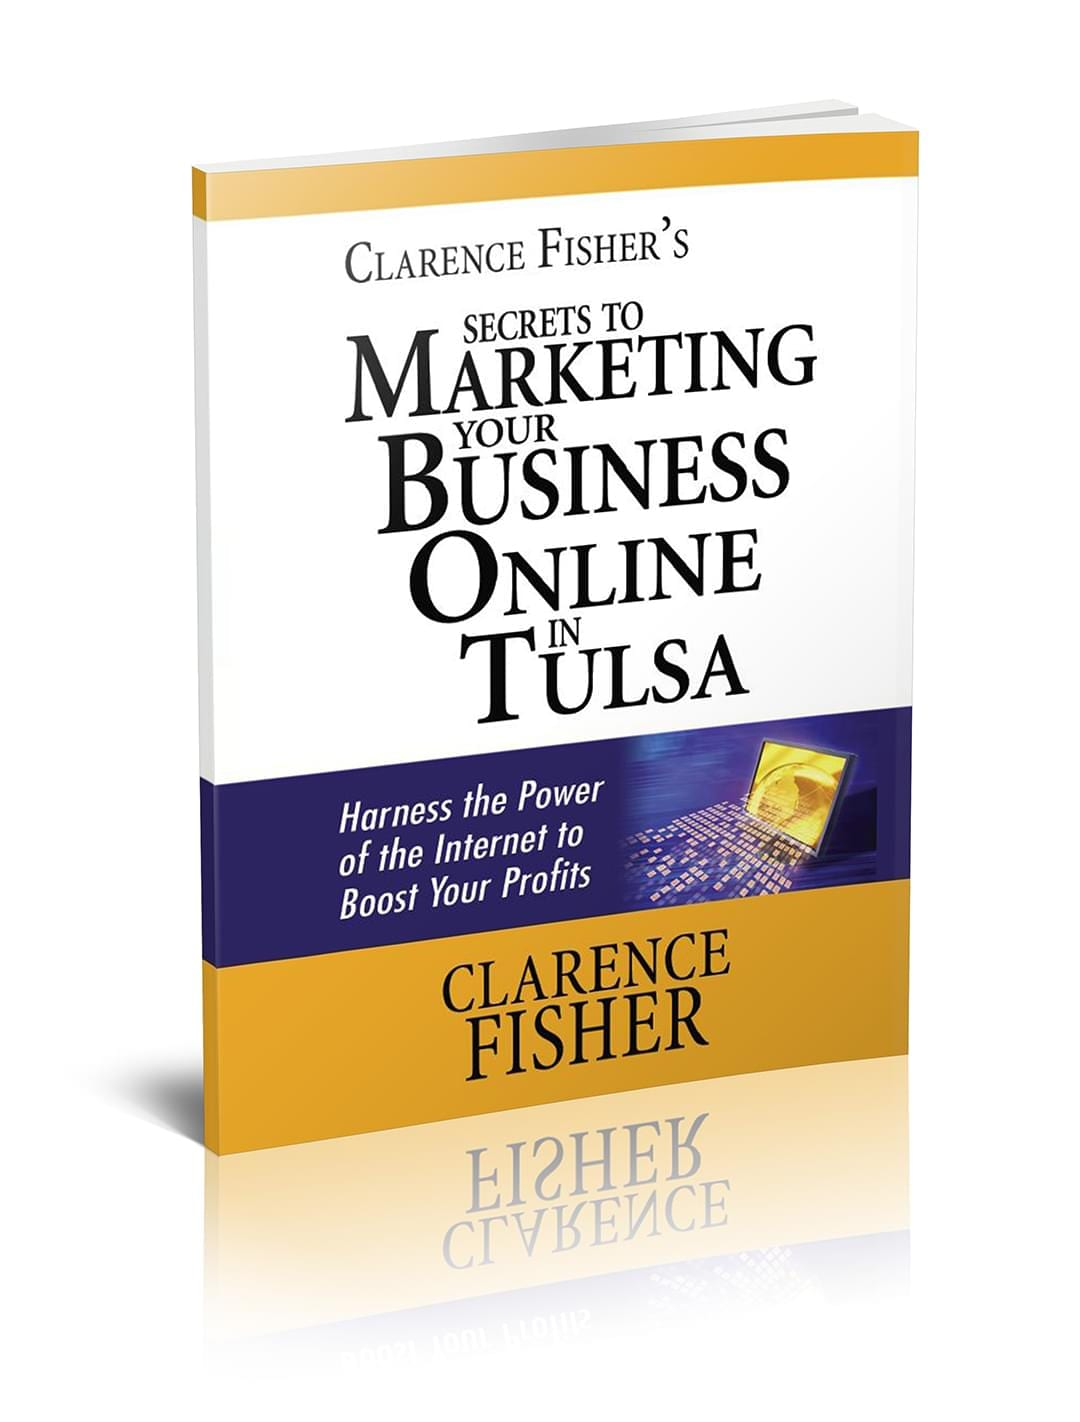 Tulsa Marketing Book